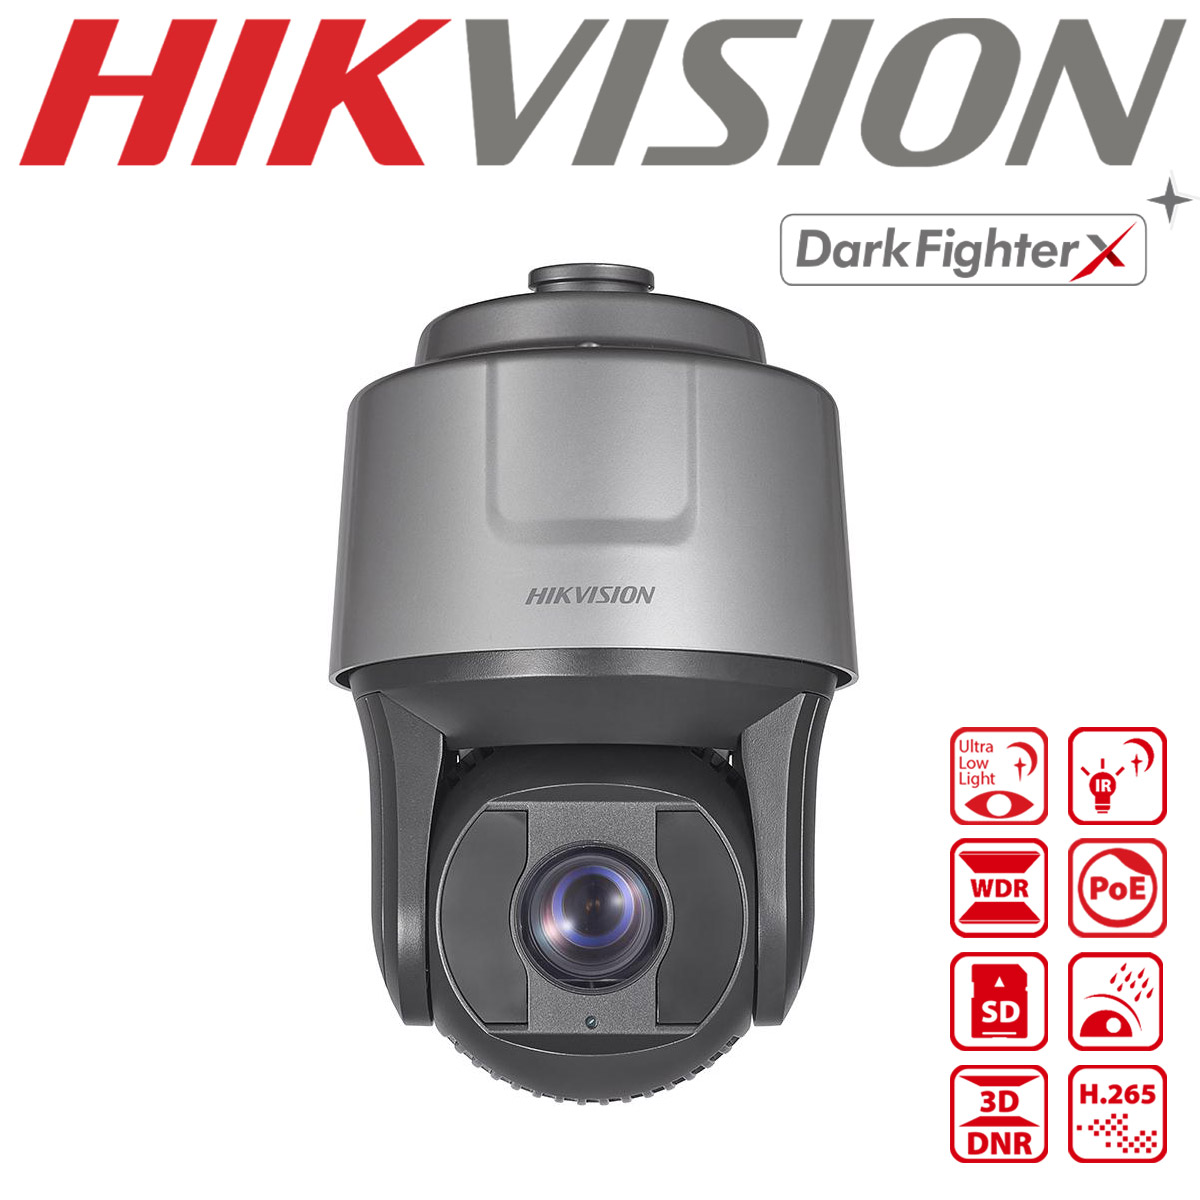 HIKVISION 25X DARKFIGHTERX 2MP IR NETWORK SPEED DOME DS-2DF8225IH-AEL(W)